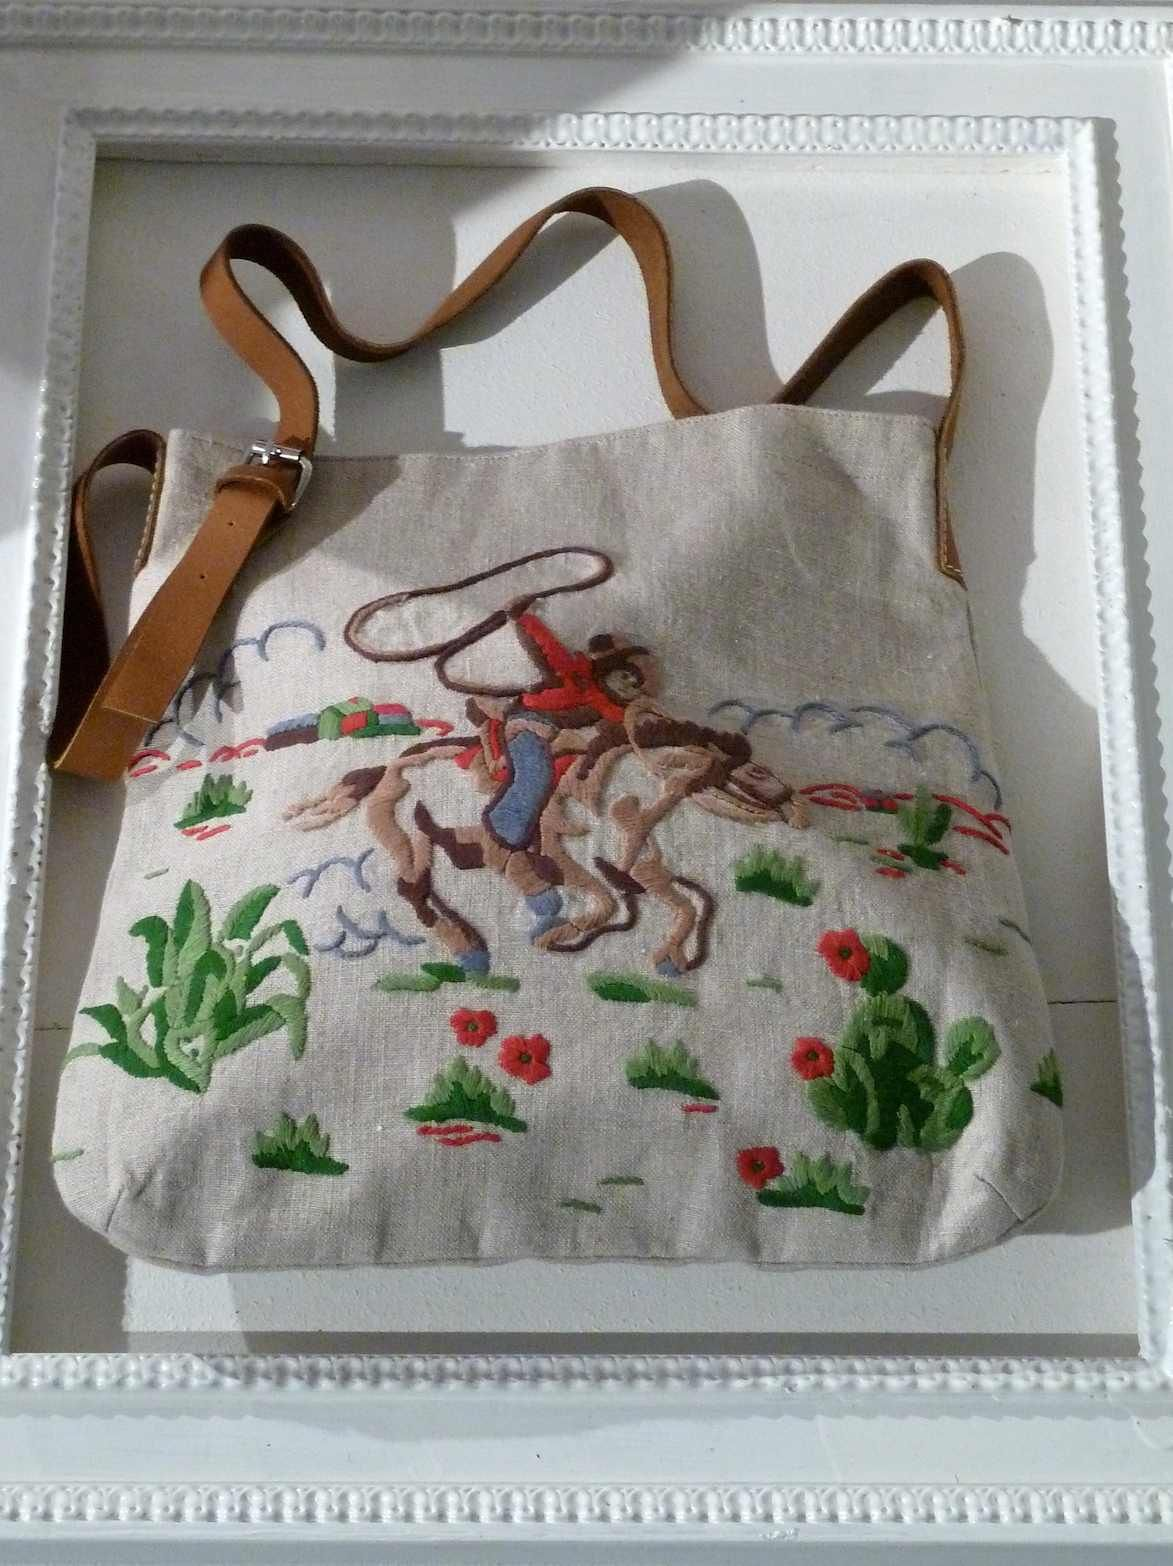 Beautiful embroidered cowboy bag from Cath Kidston for summer 2013